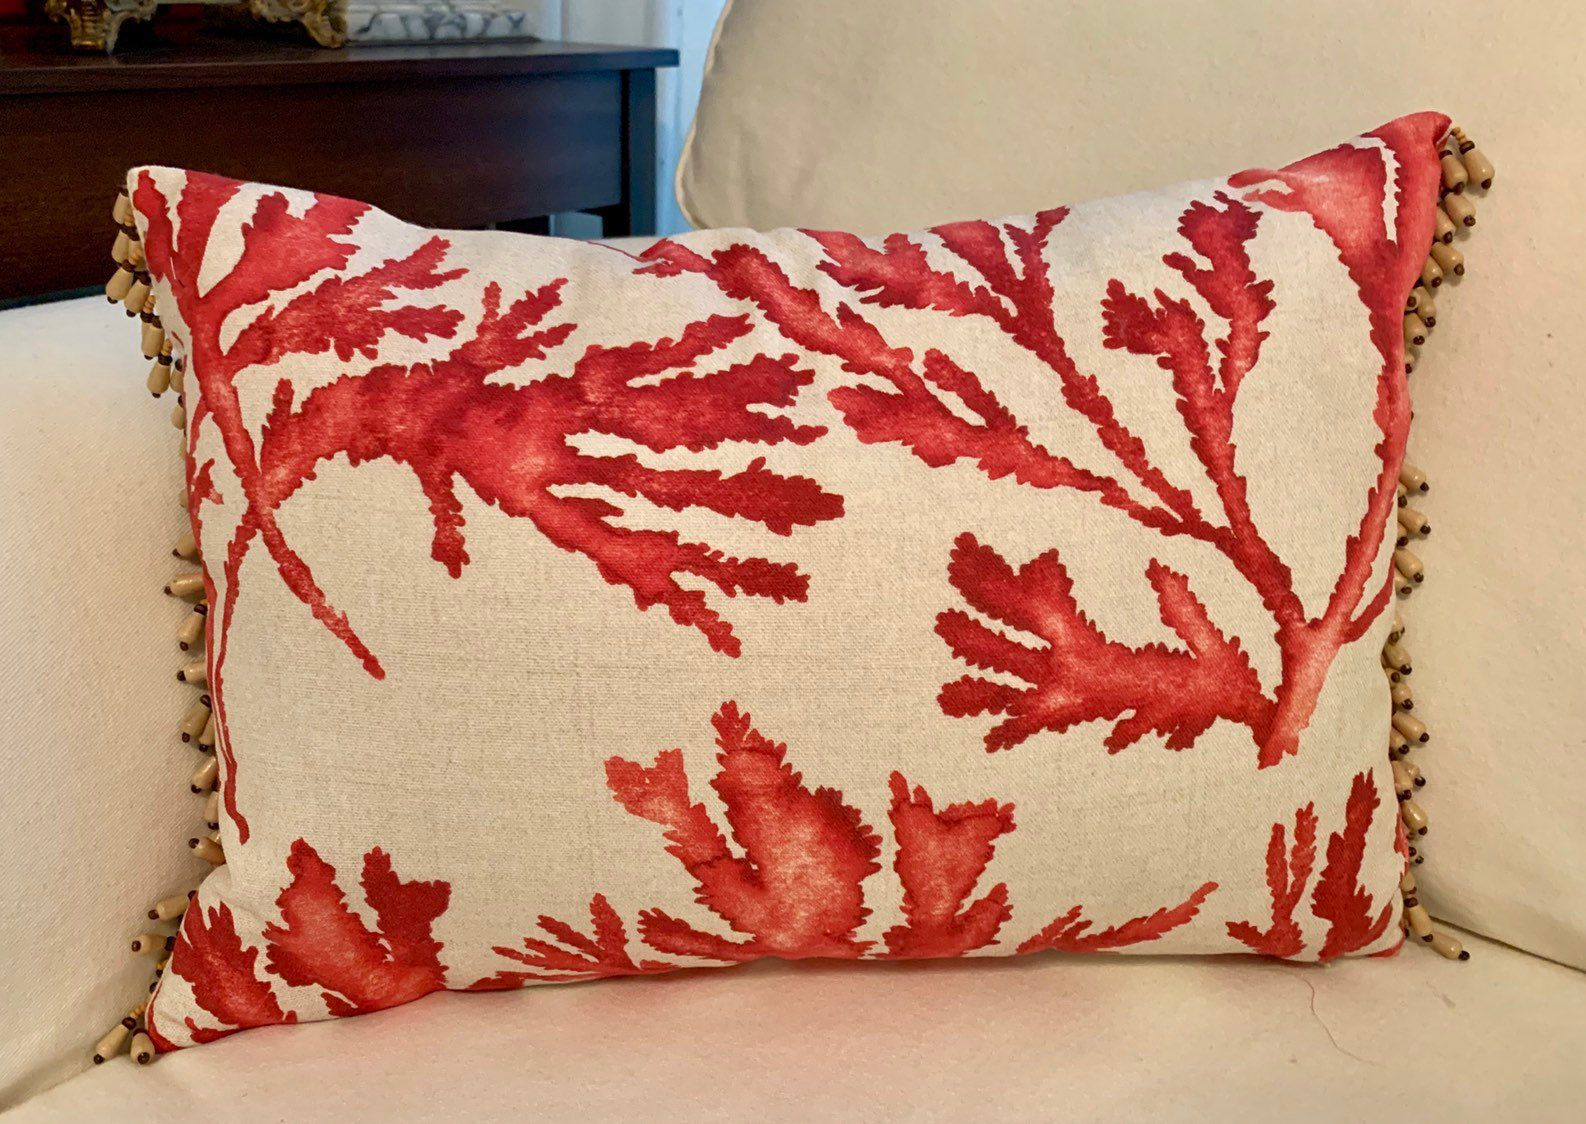 Excited To Share This Item From My Etsy Shop Coral Print Throw Pillow Beach Pillow Cover Coral Print Throw Pi Beach Pillow Covers Throw Pillows Beach Pillows